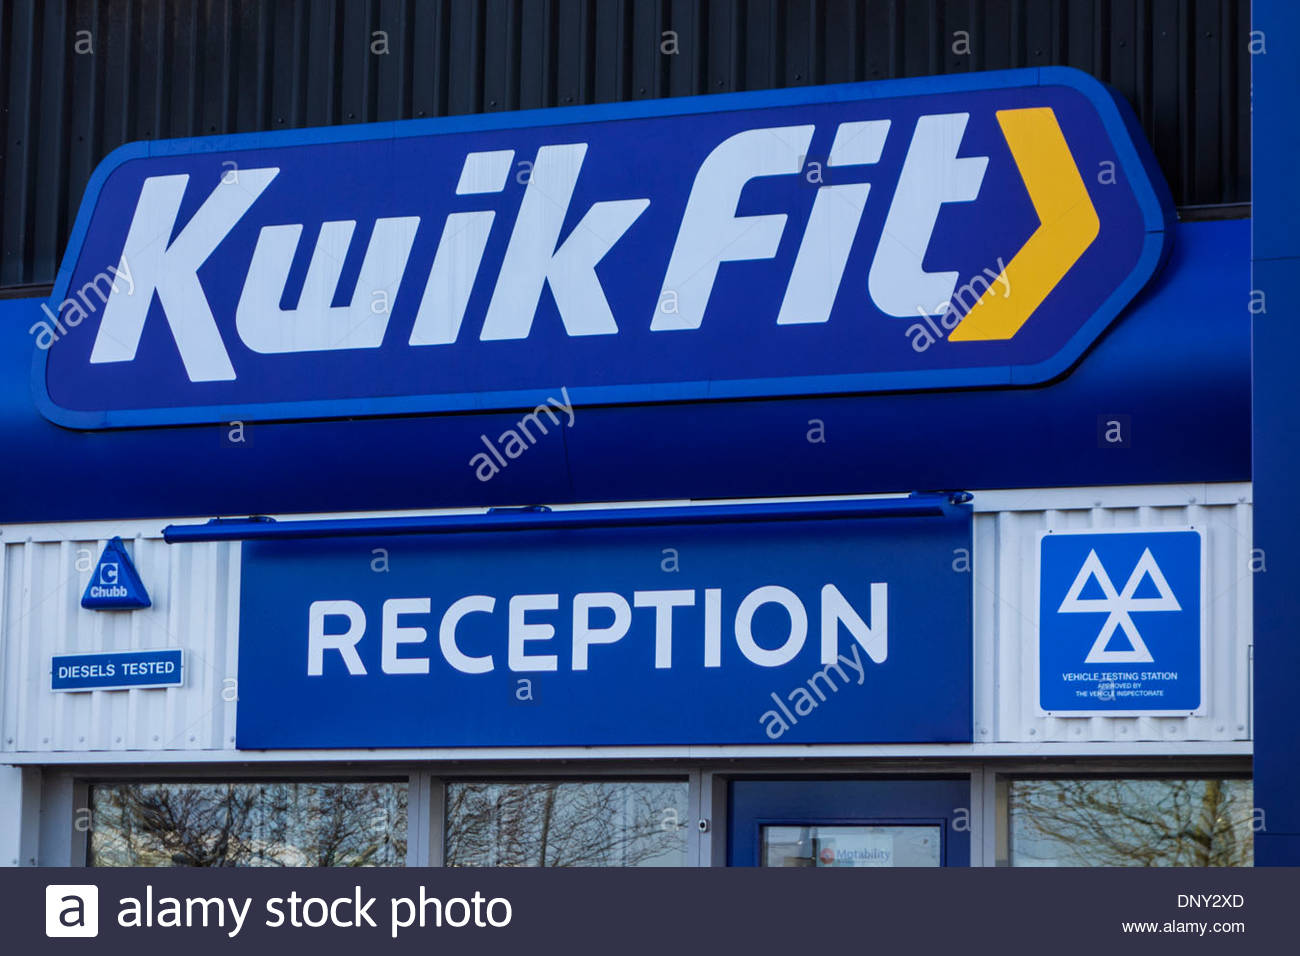 Kwik Fit reception sign on a branch of the car servicing business in Cambridge, England, UK - Stock Image